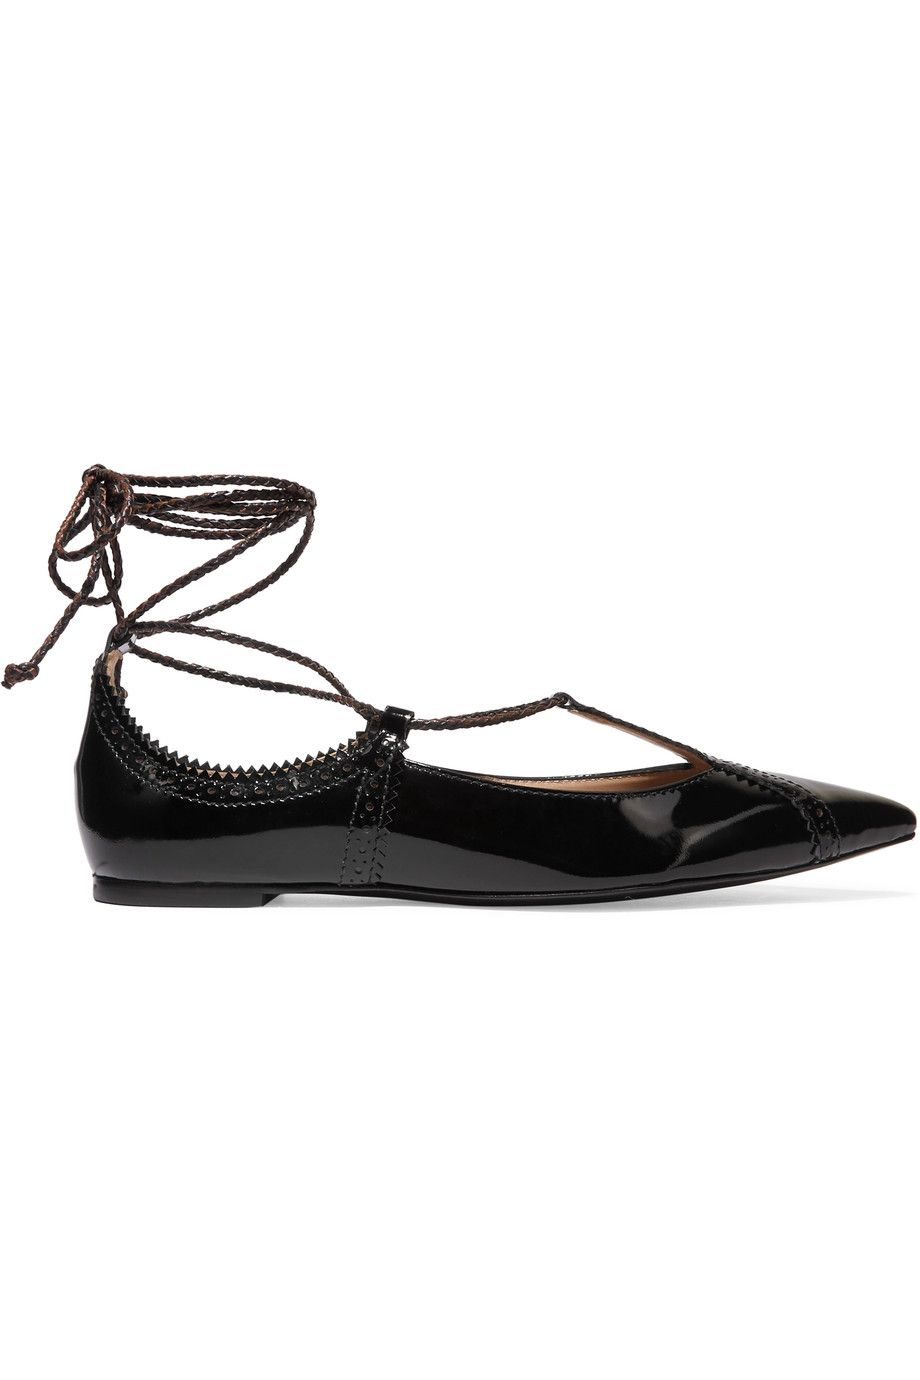 75146f6f000ca TORY BURCH Varenne lace-up patent leather point-toe flats.  toryburch   shoes  flats